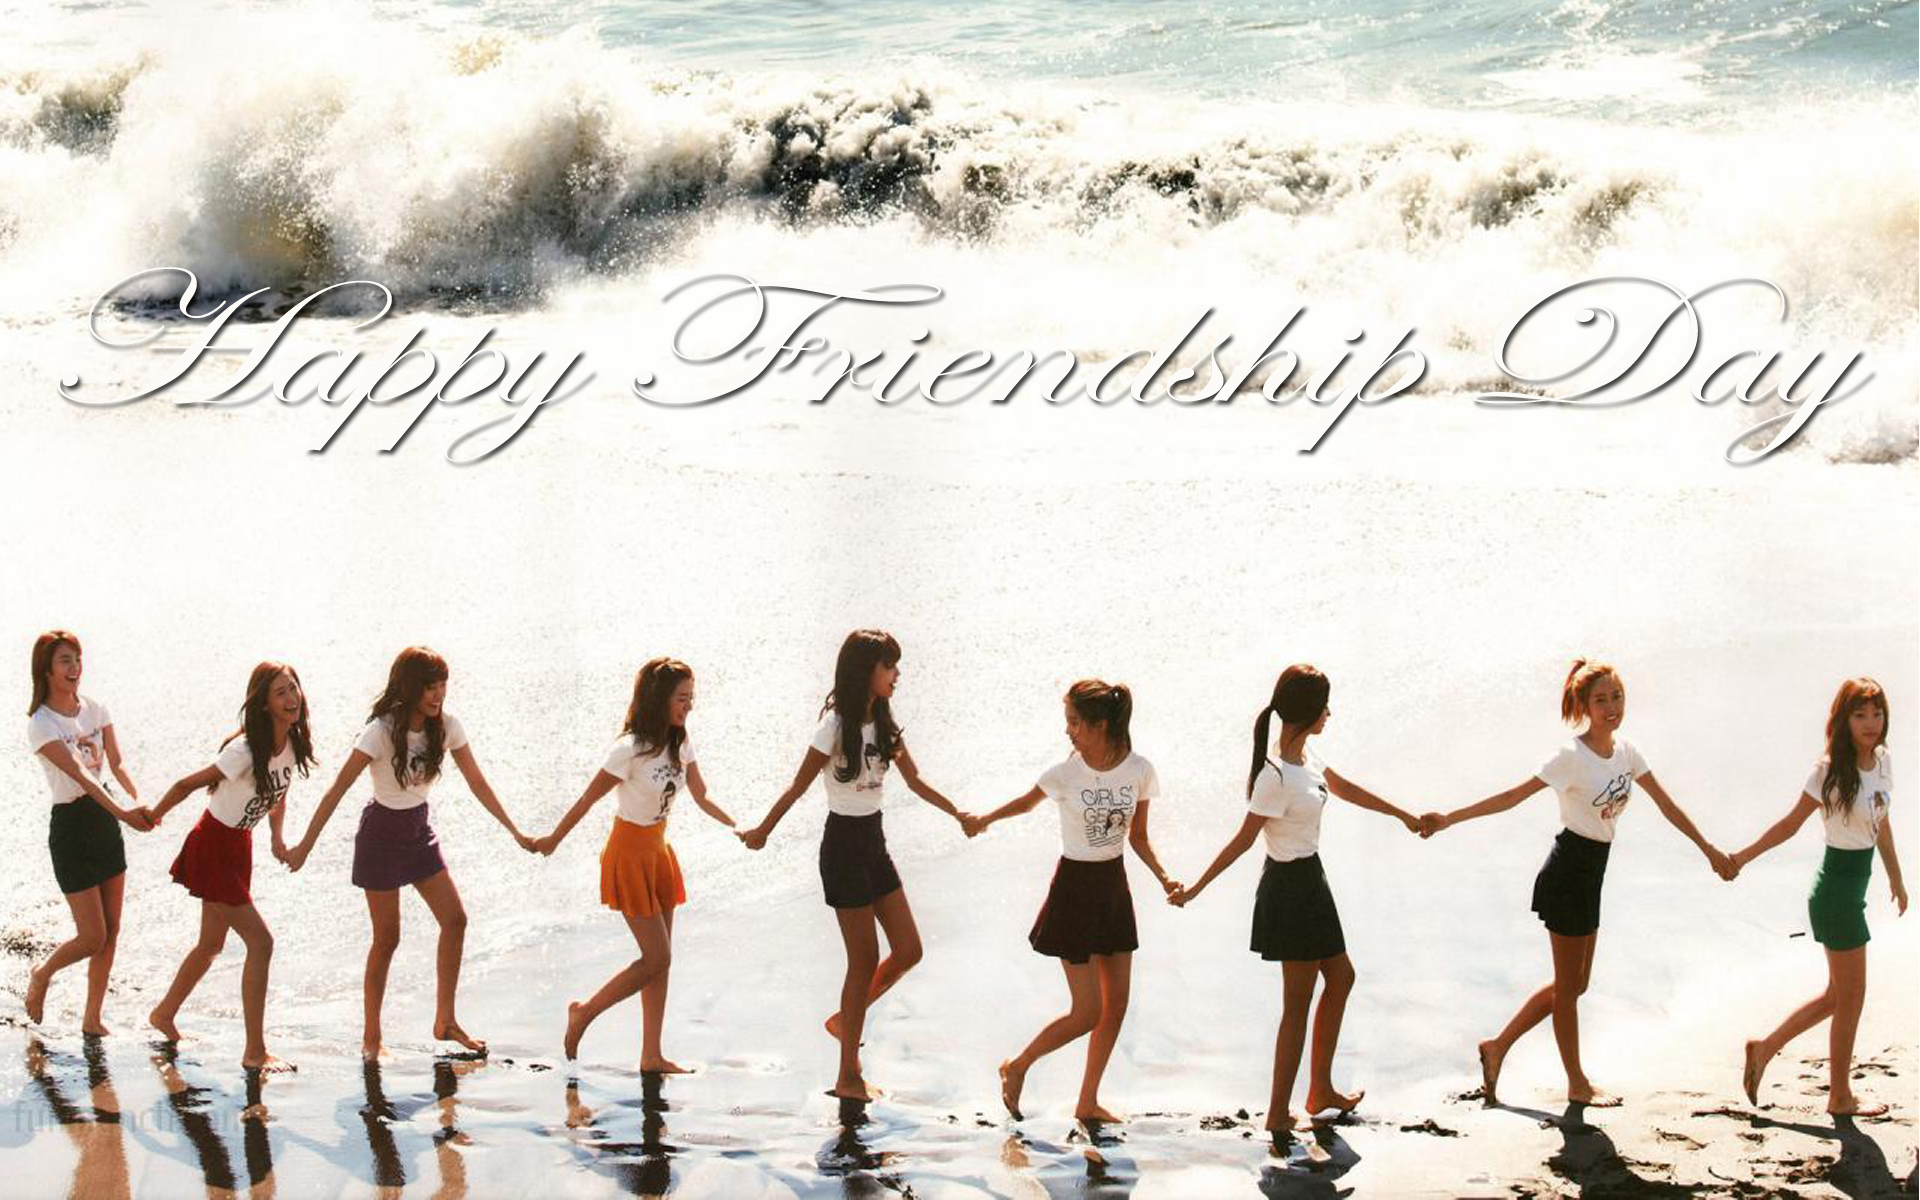 Happy-friendship-day-images-Wallpapers